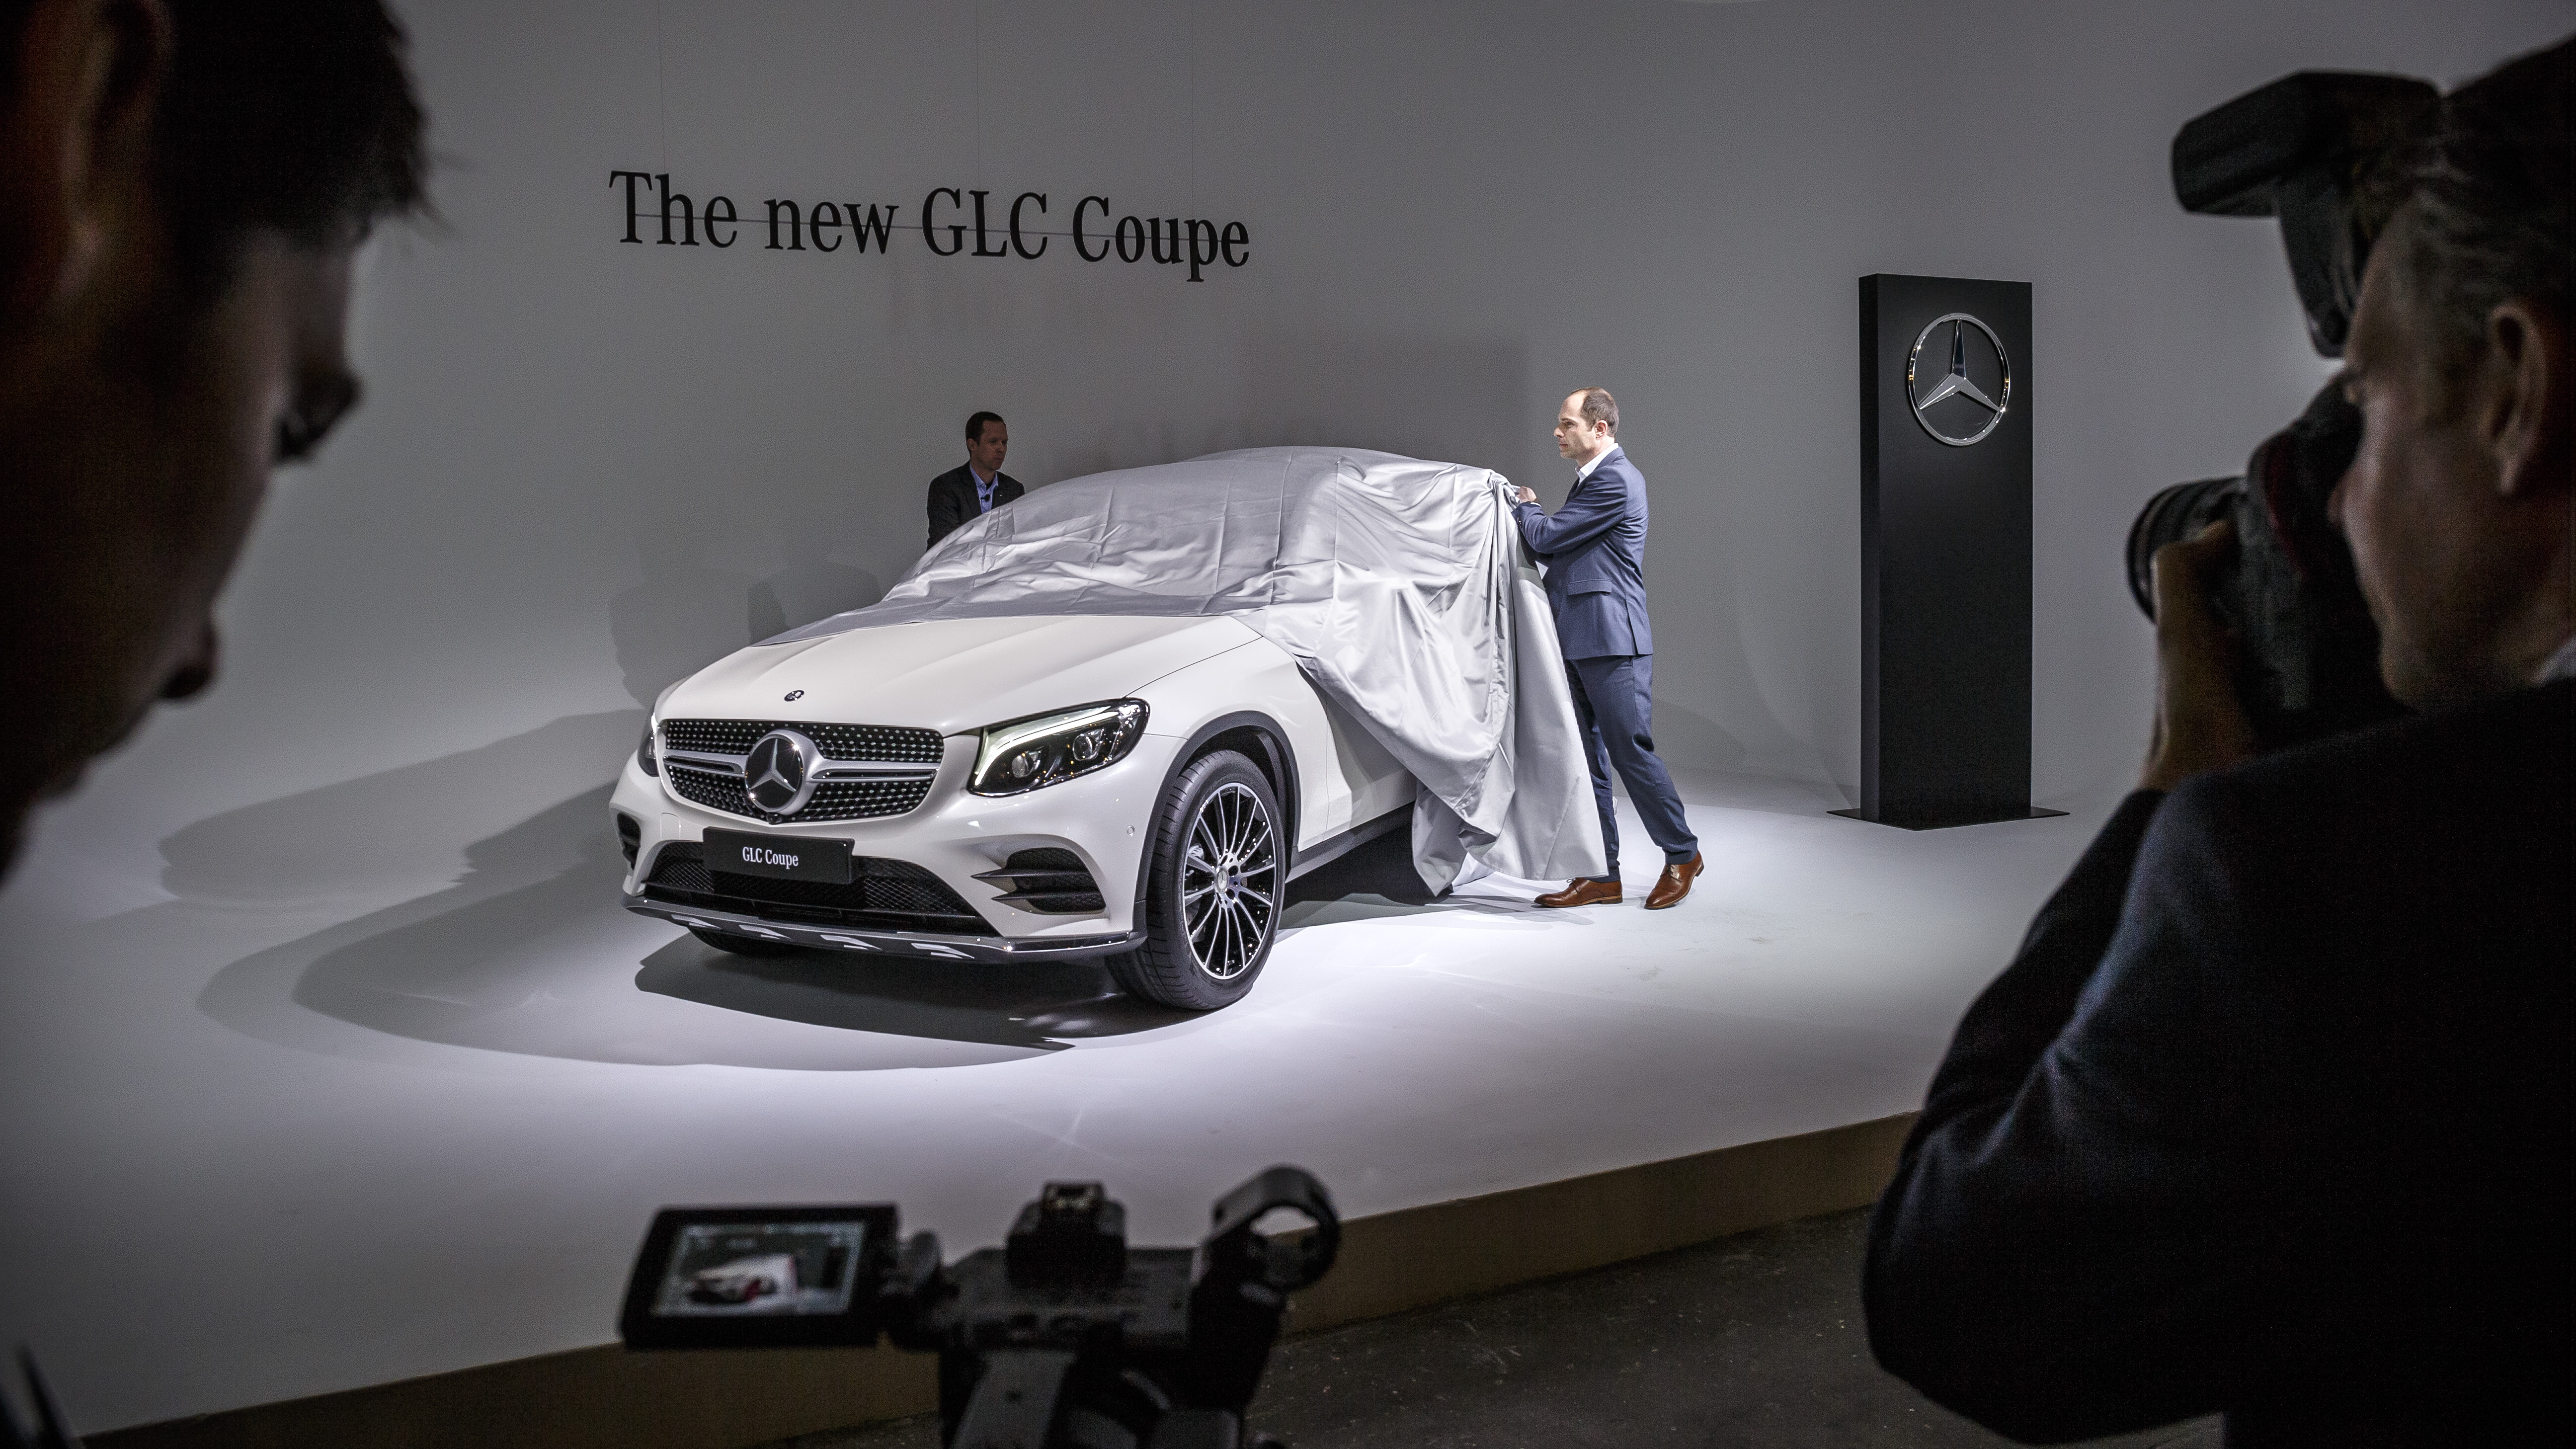 Weltpremiere des Mercedes-Benz GLC Coupé am Vorabend der New York International Auto Show 2016: World Premiere of the Mercedes-Benz GLC Coupé on the eve of the 2016 New York International Auto Show: